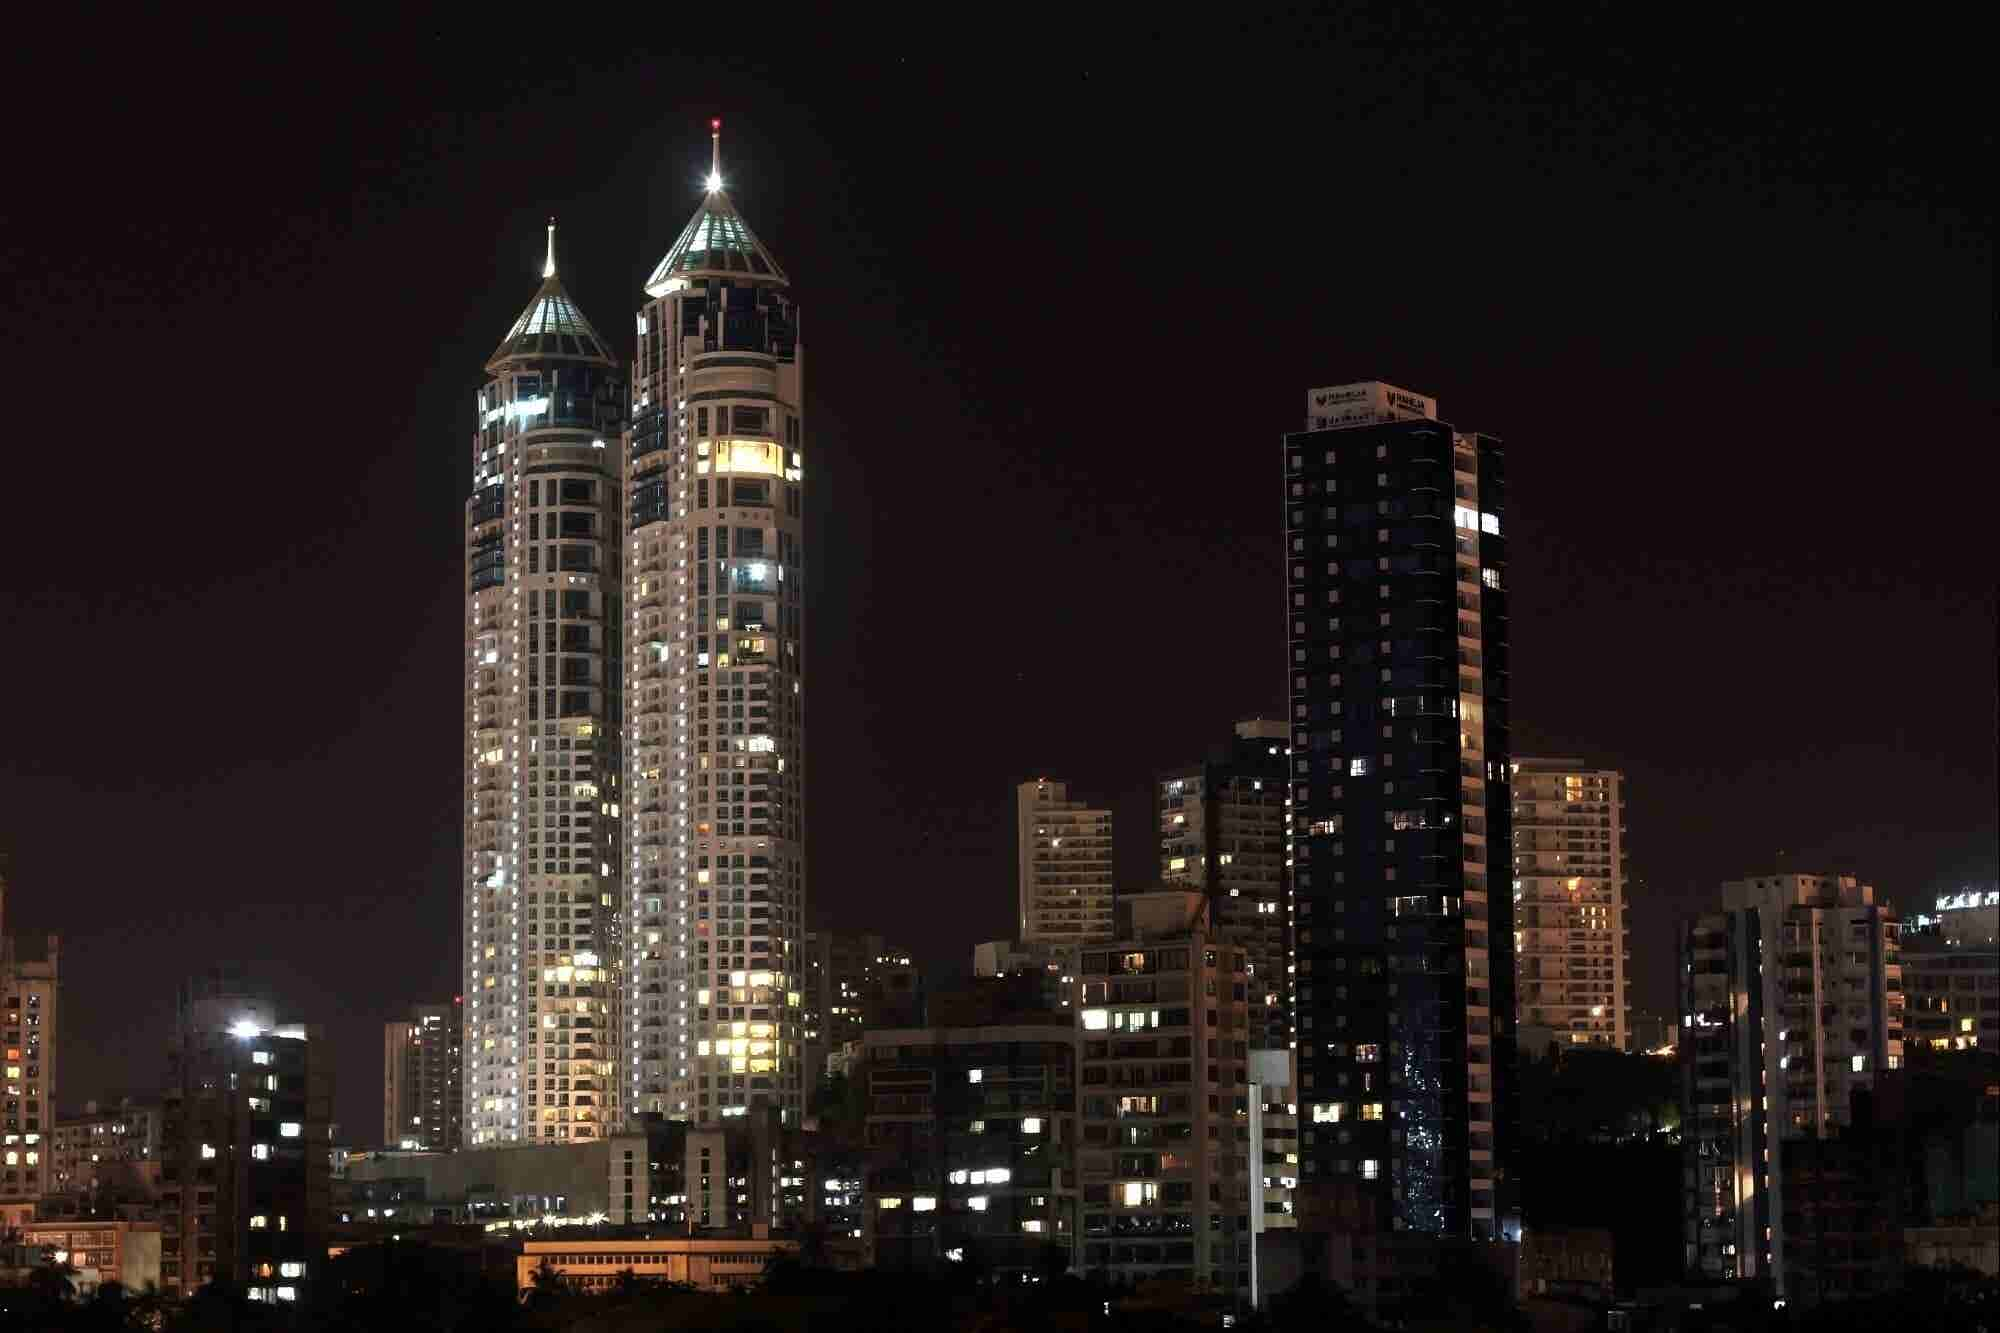 Why India is Not the First Destination of Choice in Asia for International Growth-Stage Startups